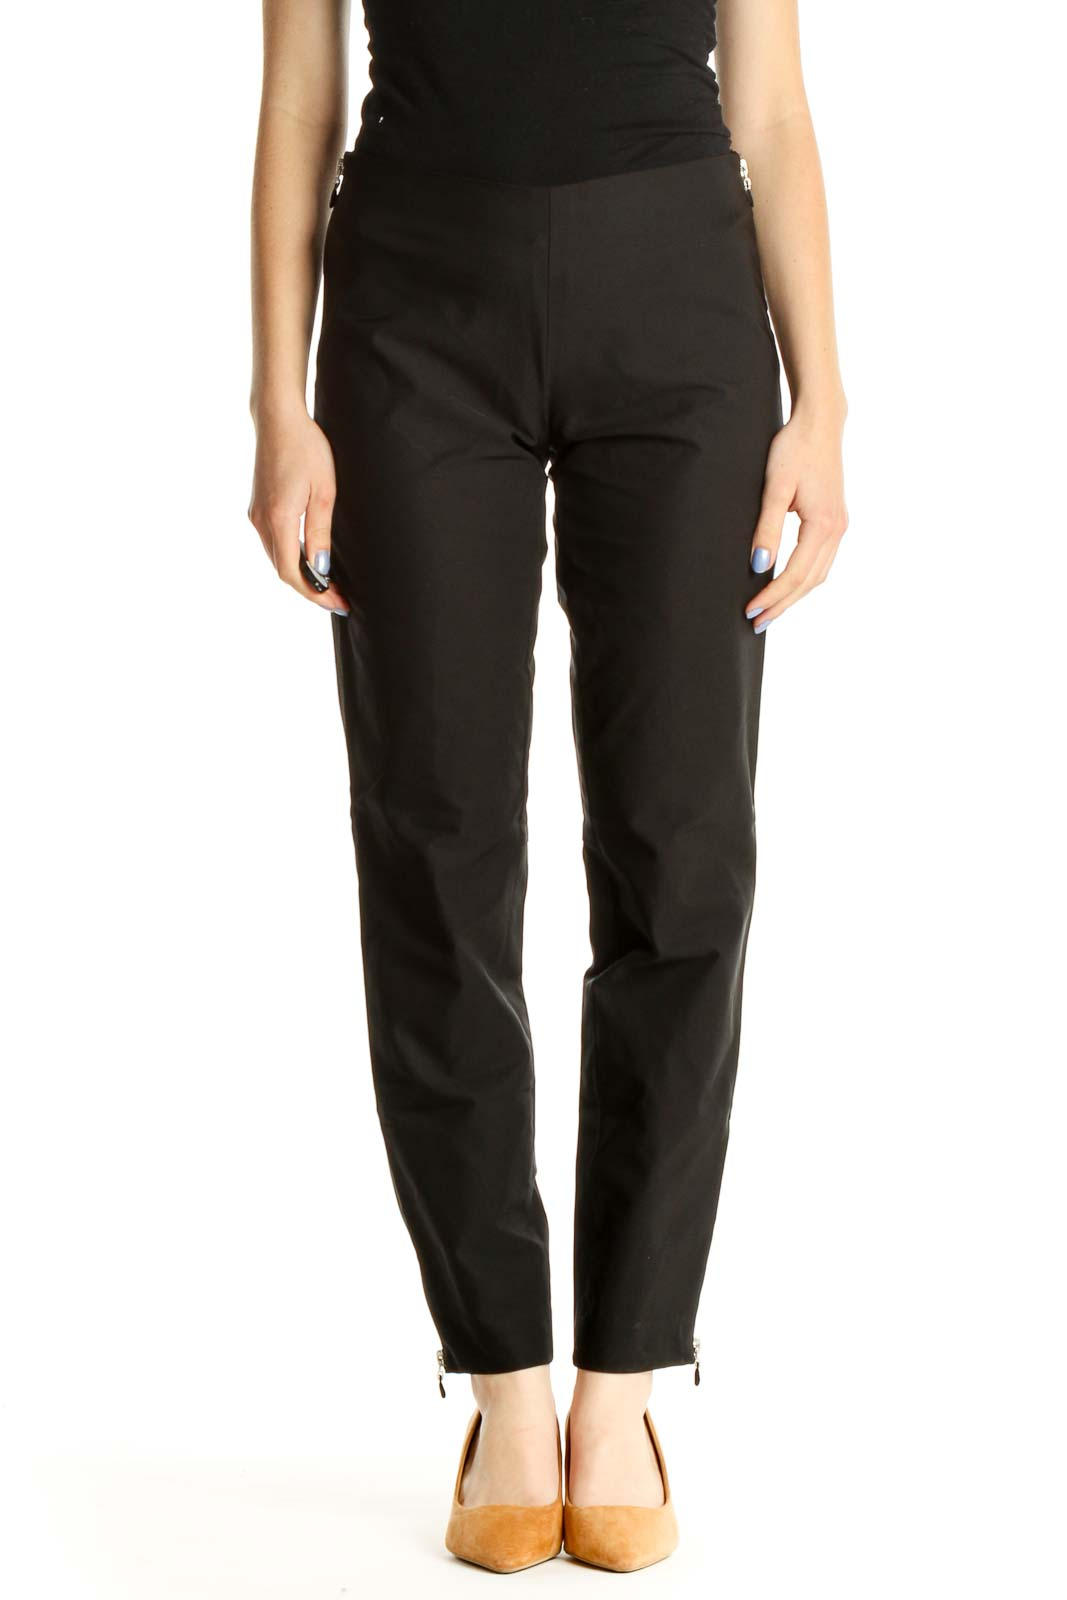 Black Solid All Day Wear Zippered Trousers Front